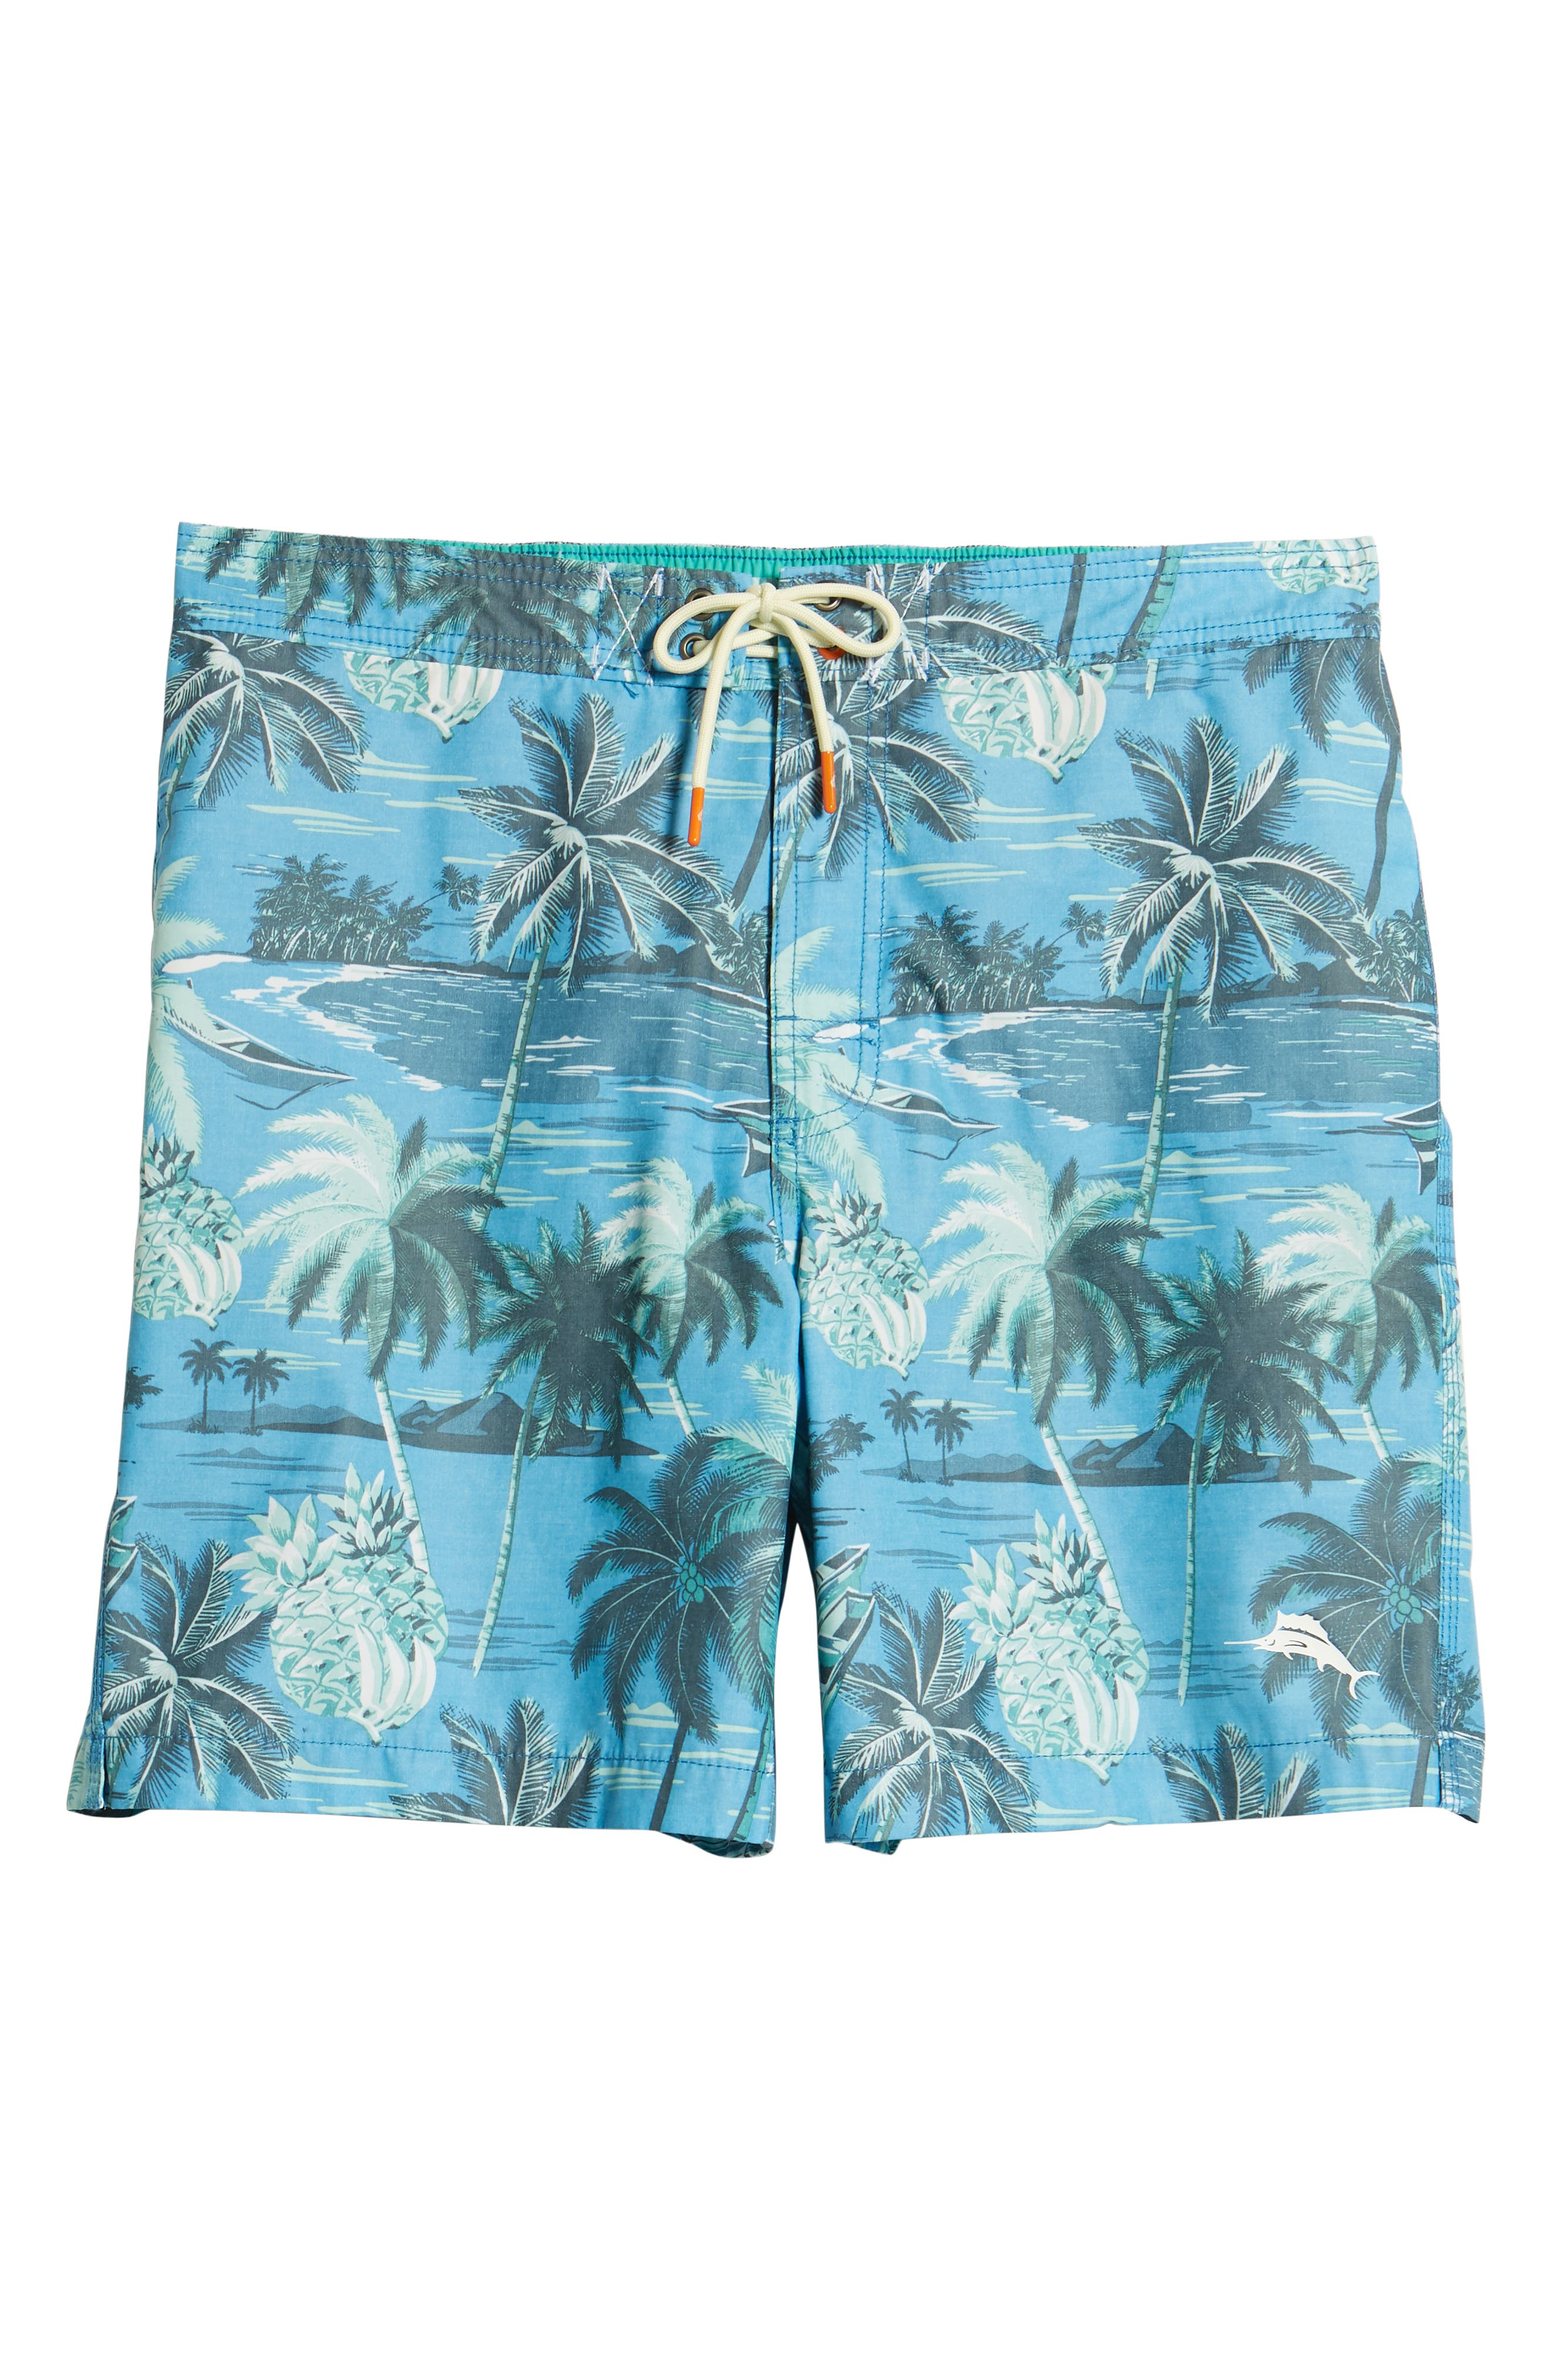 Baja Puerto Vallarta Palms Board Shorts,                             Alternate thumbnail 6, color,